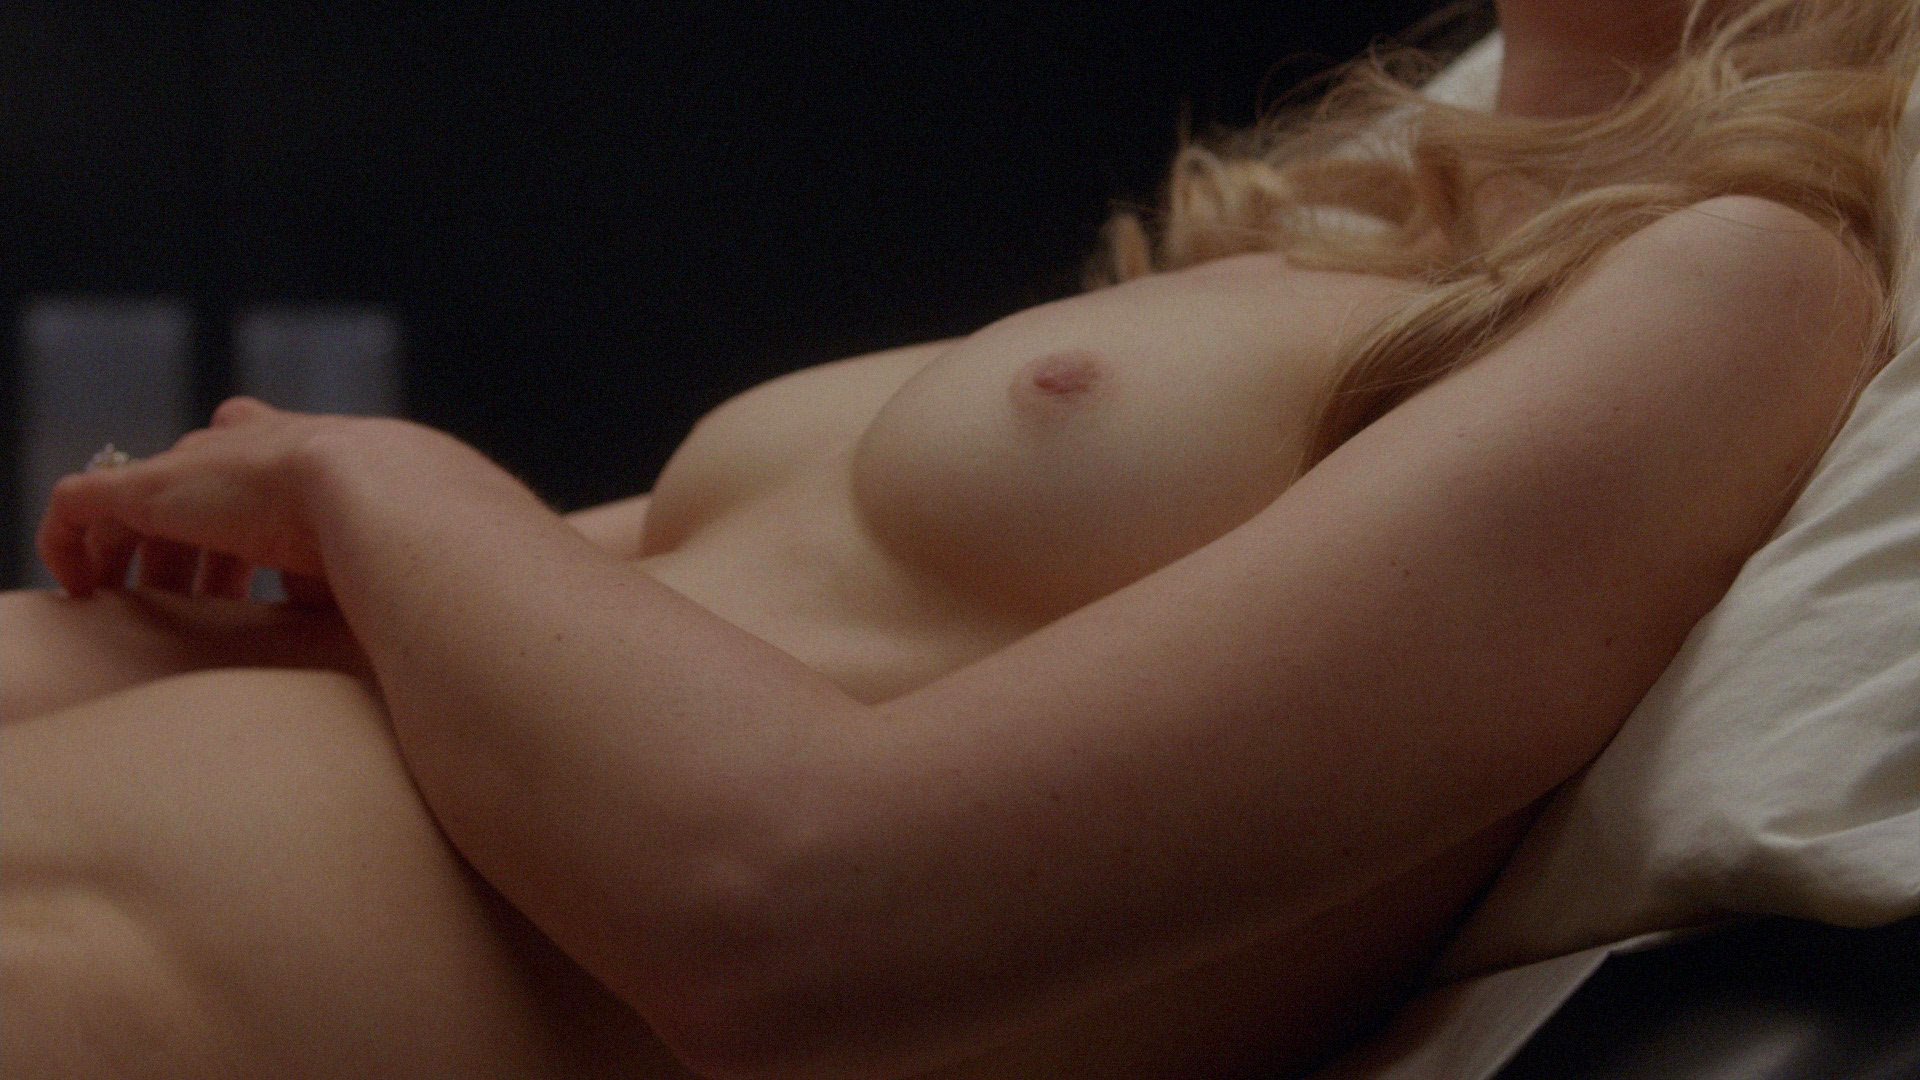 Young gianna michael nude